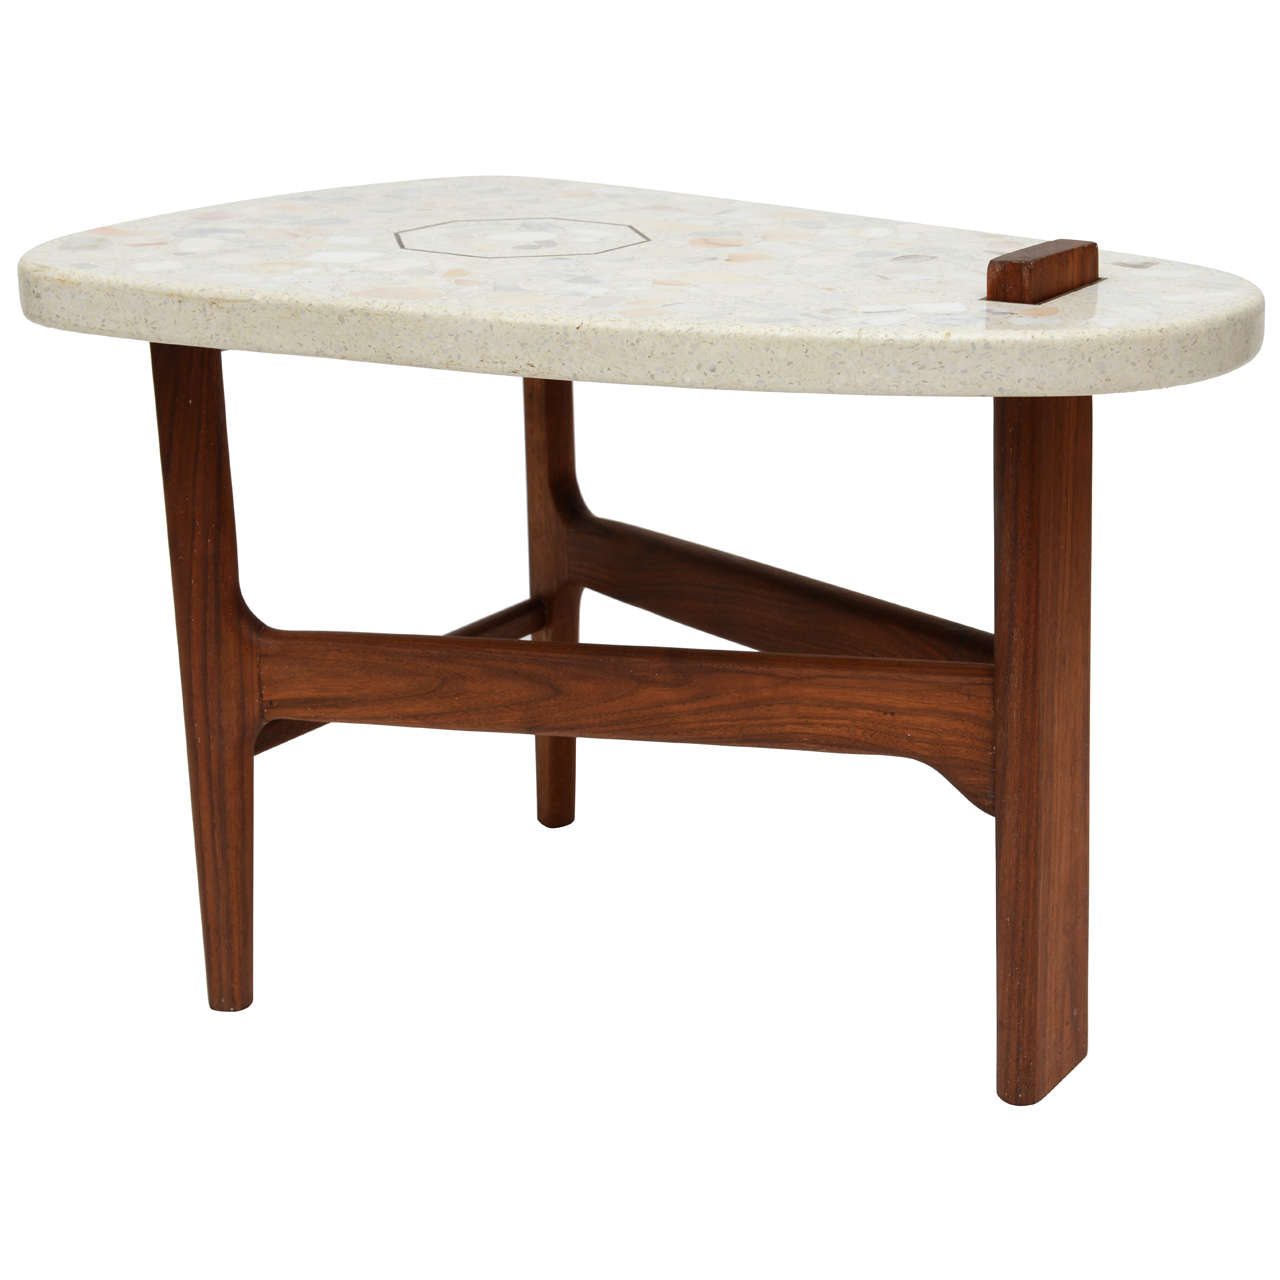 Surfboard Tables For Sale Style Of Harvey Probber Surfboard Side Table At 1stdibs